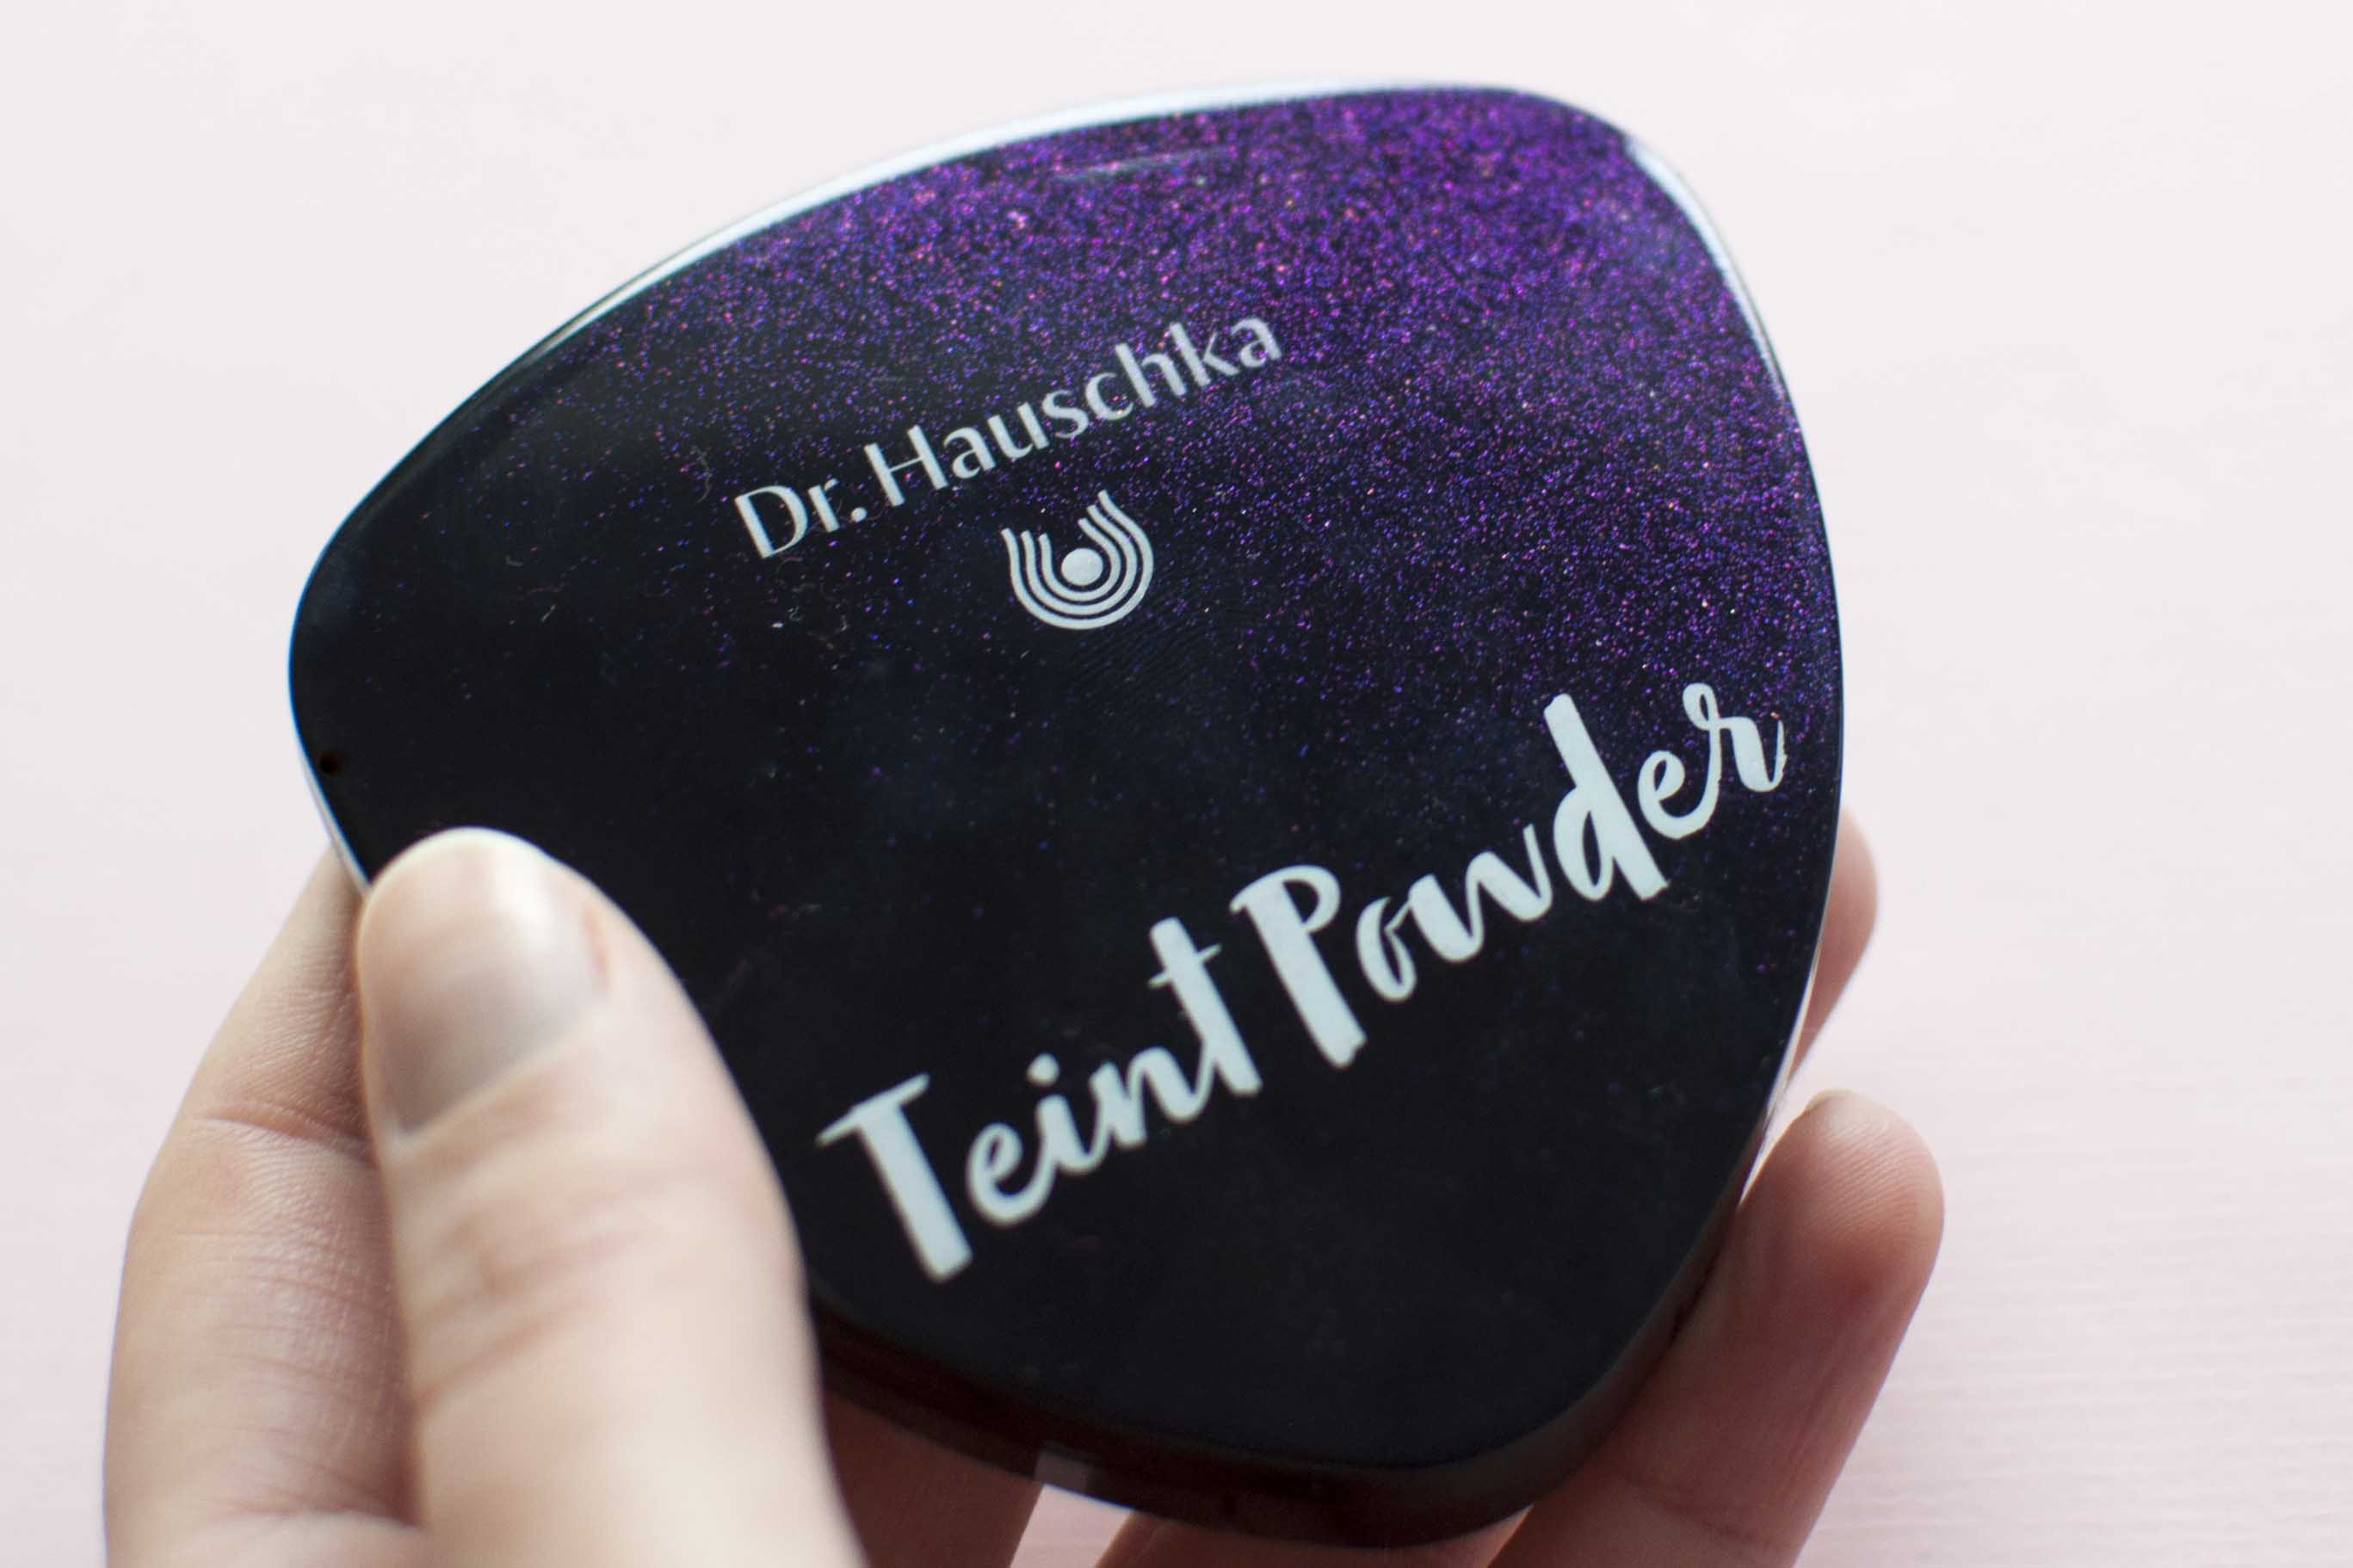 review dr hauschka purple light limited edition make up cruelty free natural beauty